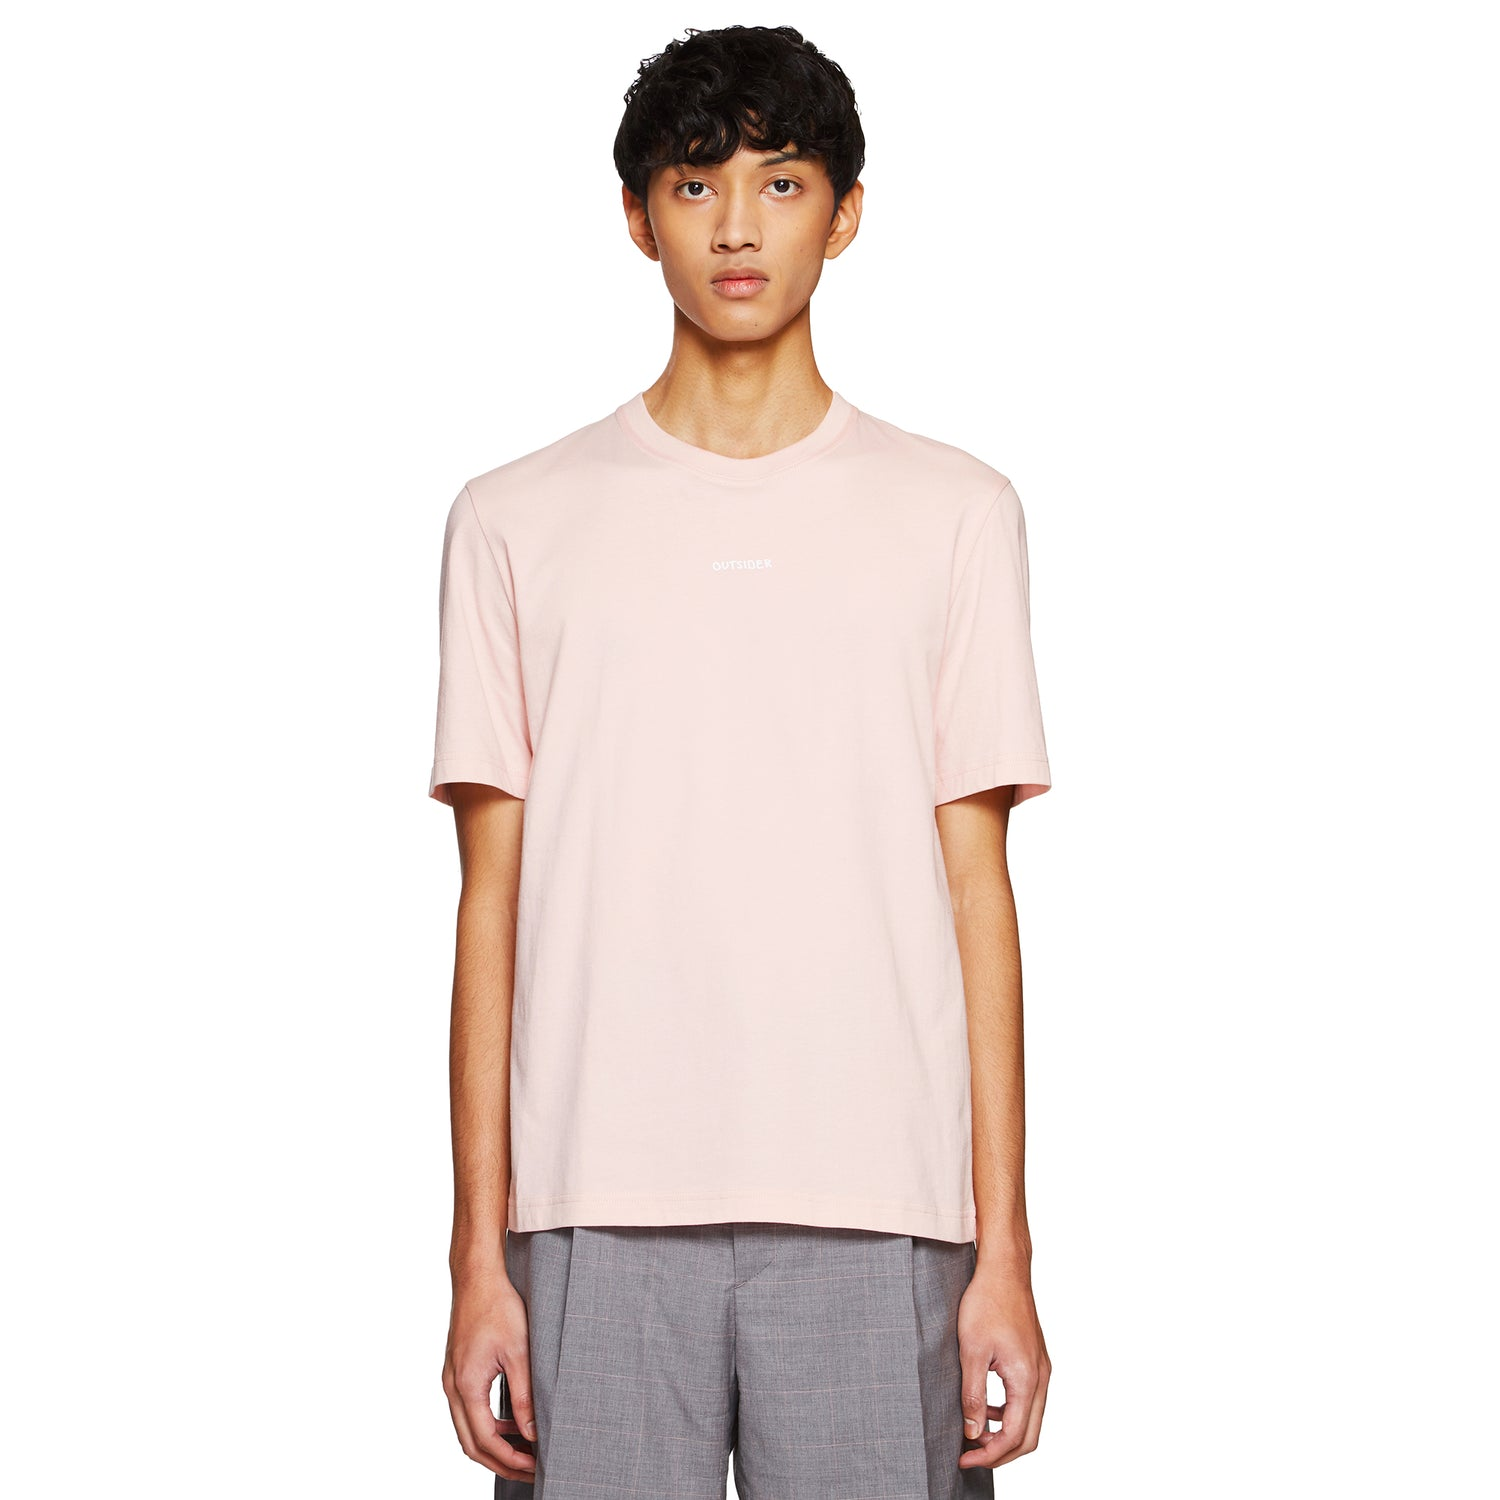 OUTSIDER BLUSH T-SHIRT